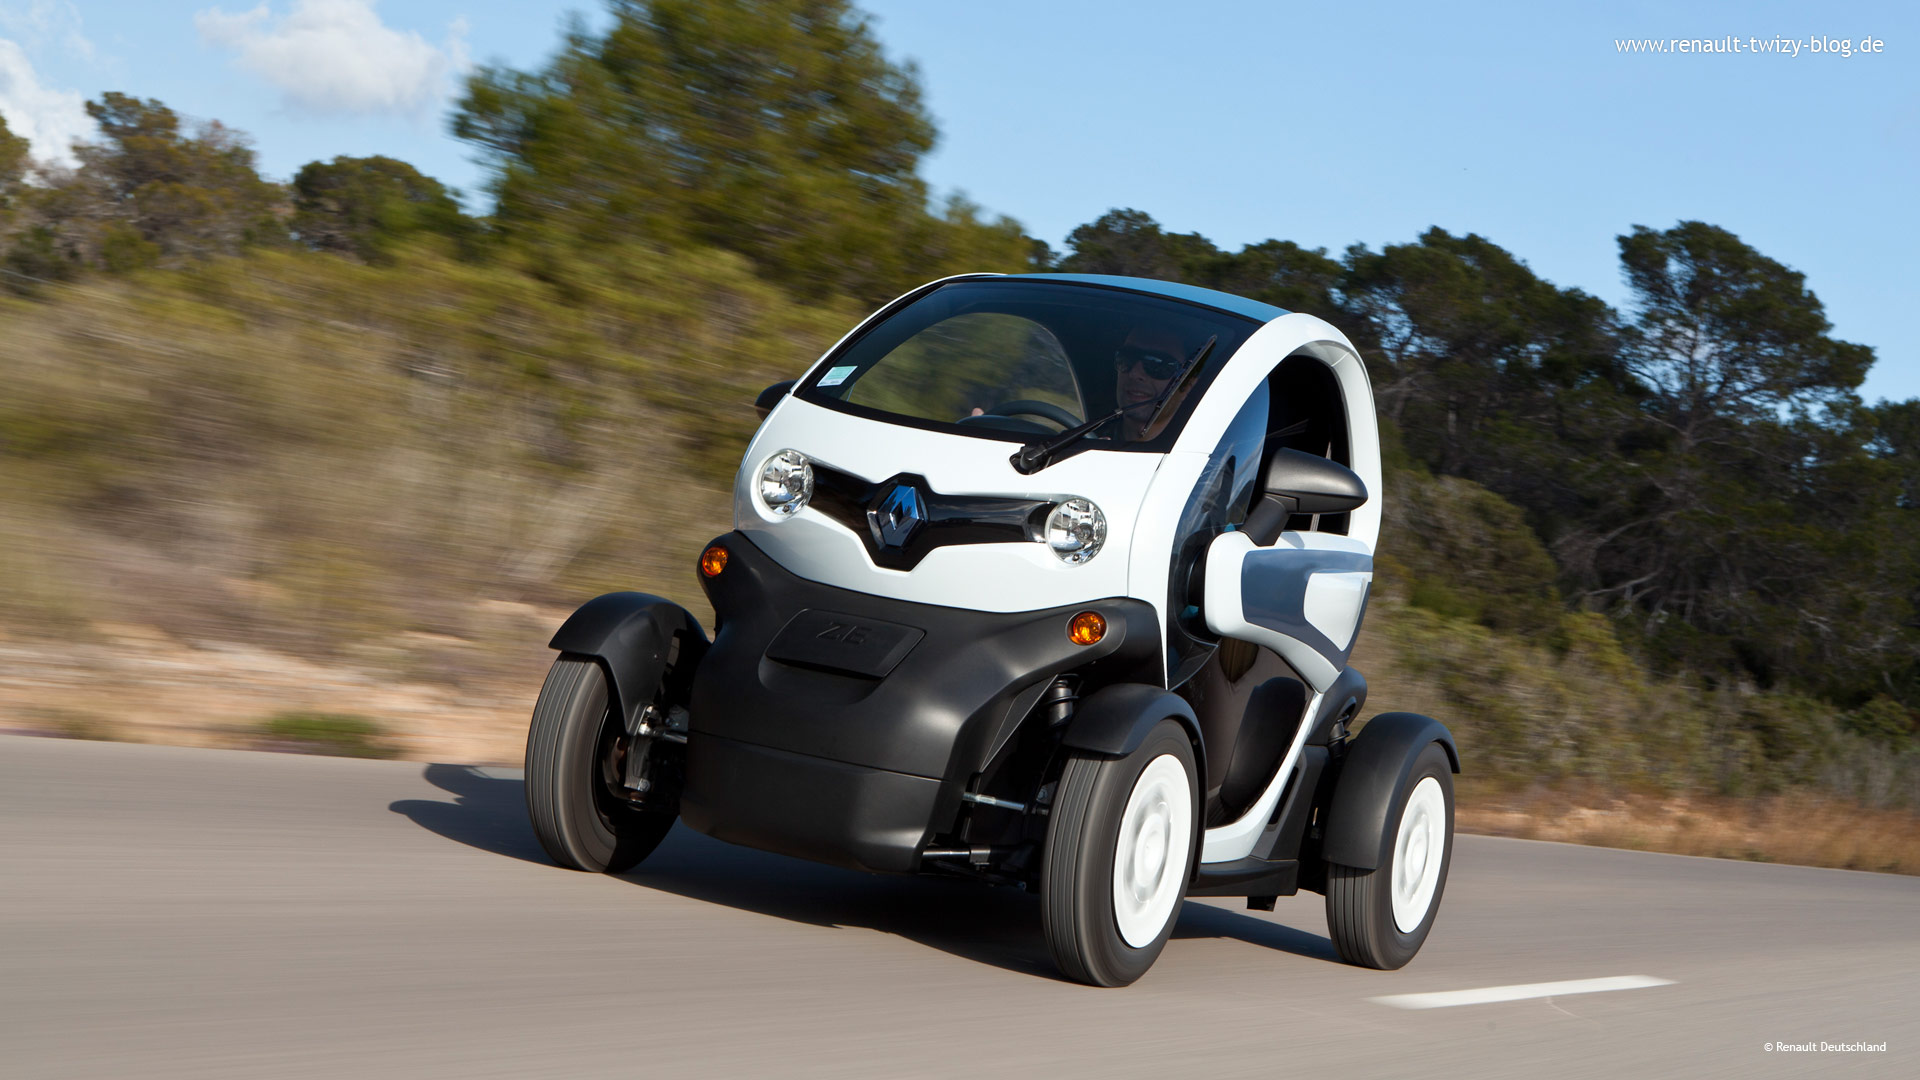 Renault Twizy 9 Cool Car Hd Wallpaper